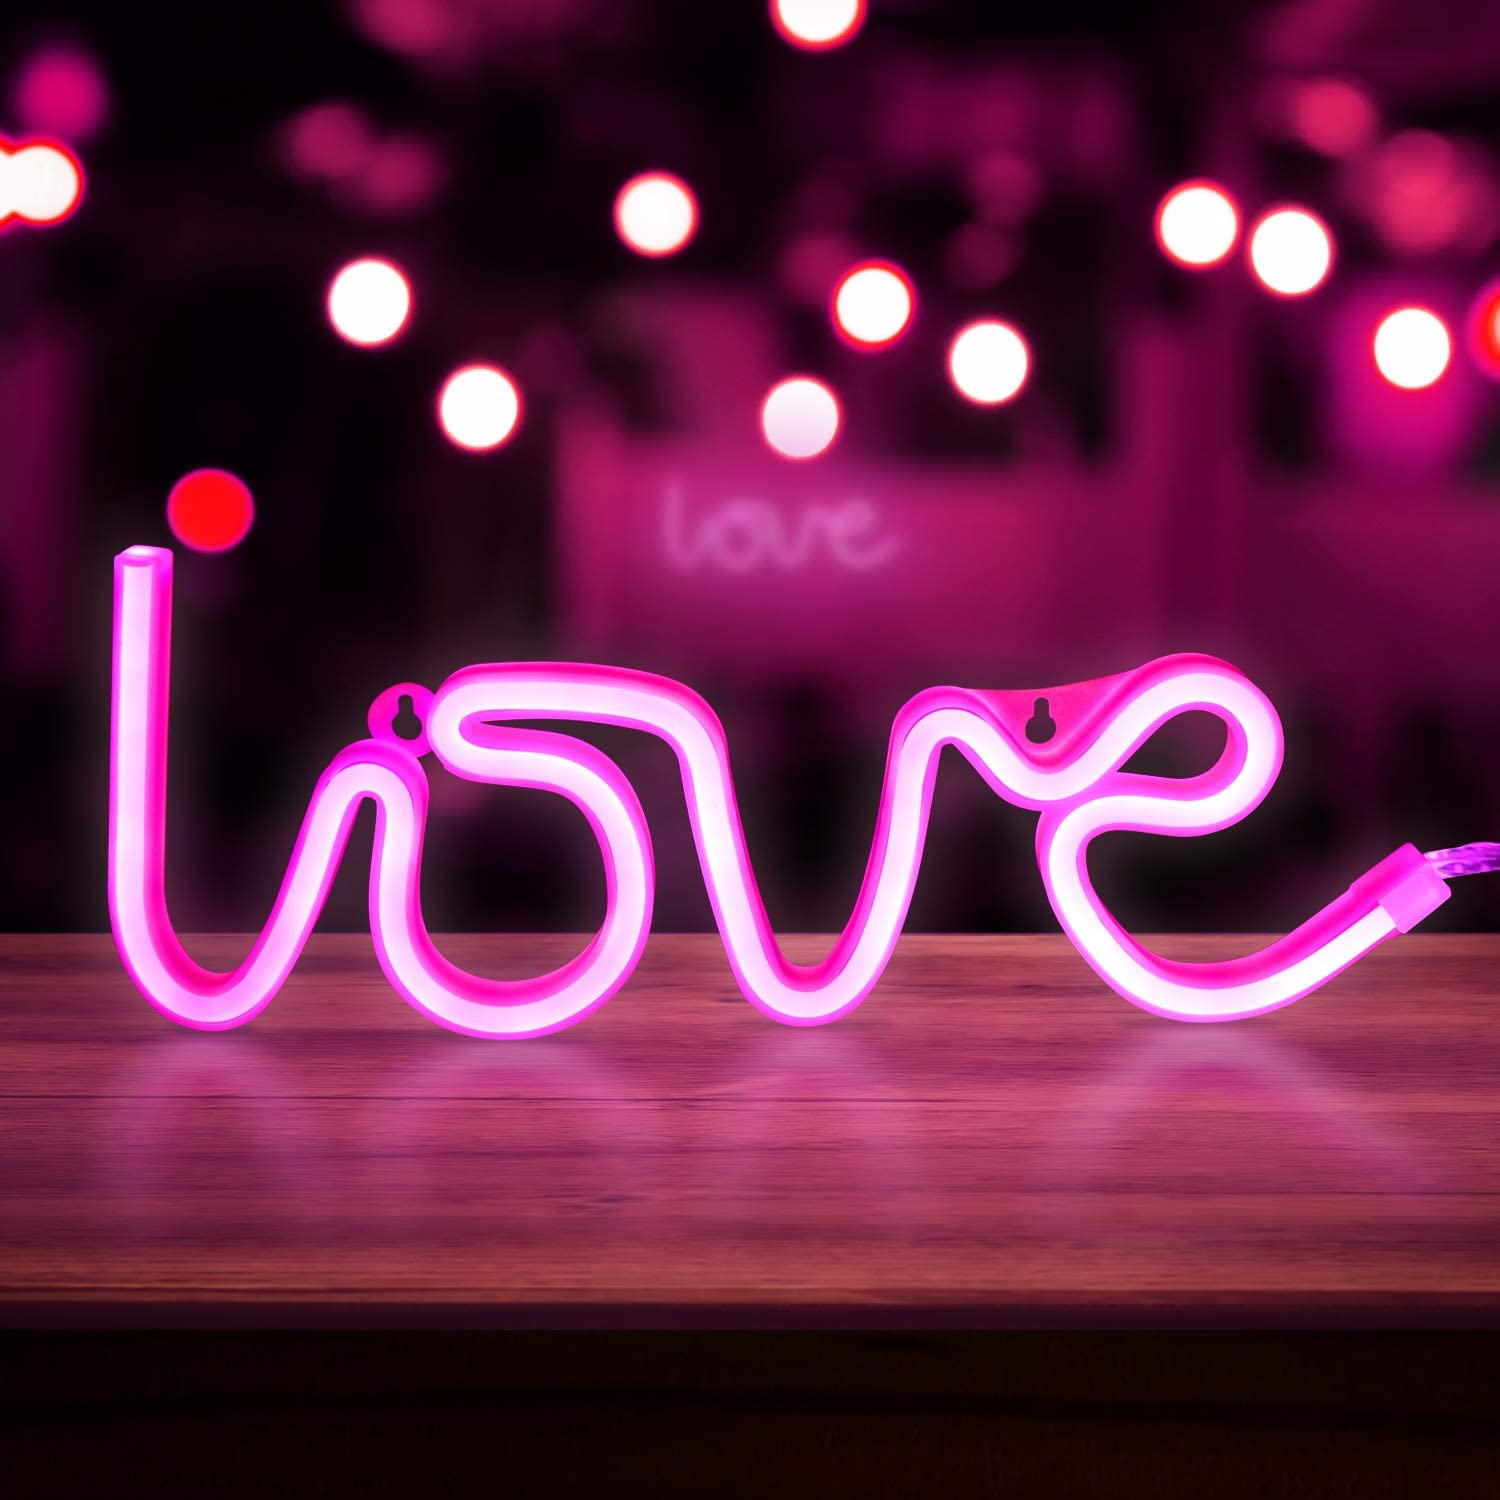 TUKTOBE Neon Pink Love Signs, LED Neon Signs for Wall Decor, Led Safety Art Wall Decoration Lights Neon Lights Night Table Lamp with Battery Powered/USB for Baby Room, Home, Wedding, Kids Gift